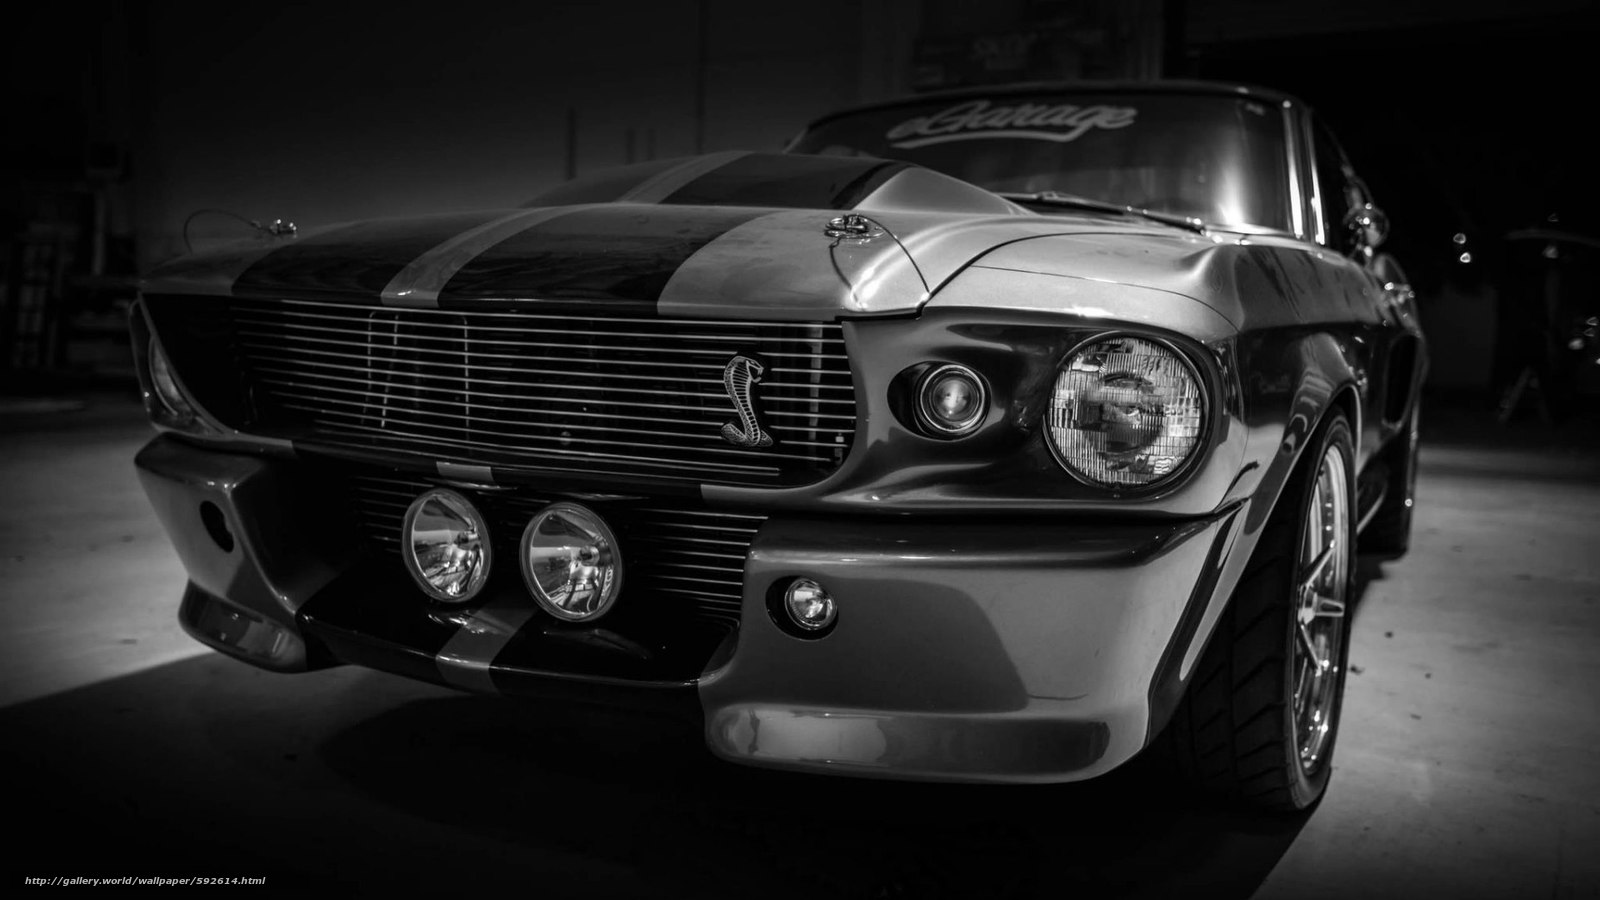 Download wallpaper ford mustang shelby gt500 free desktop wallpaper in the resolution 1920x1080 picture 592614